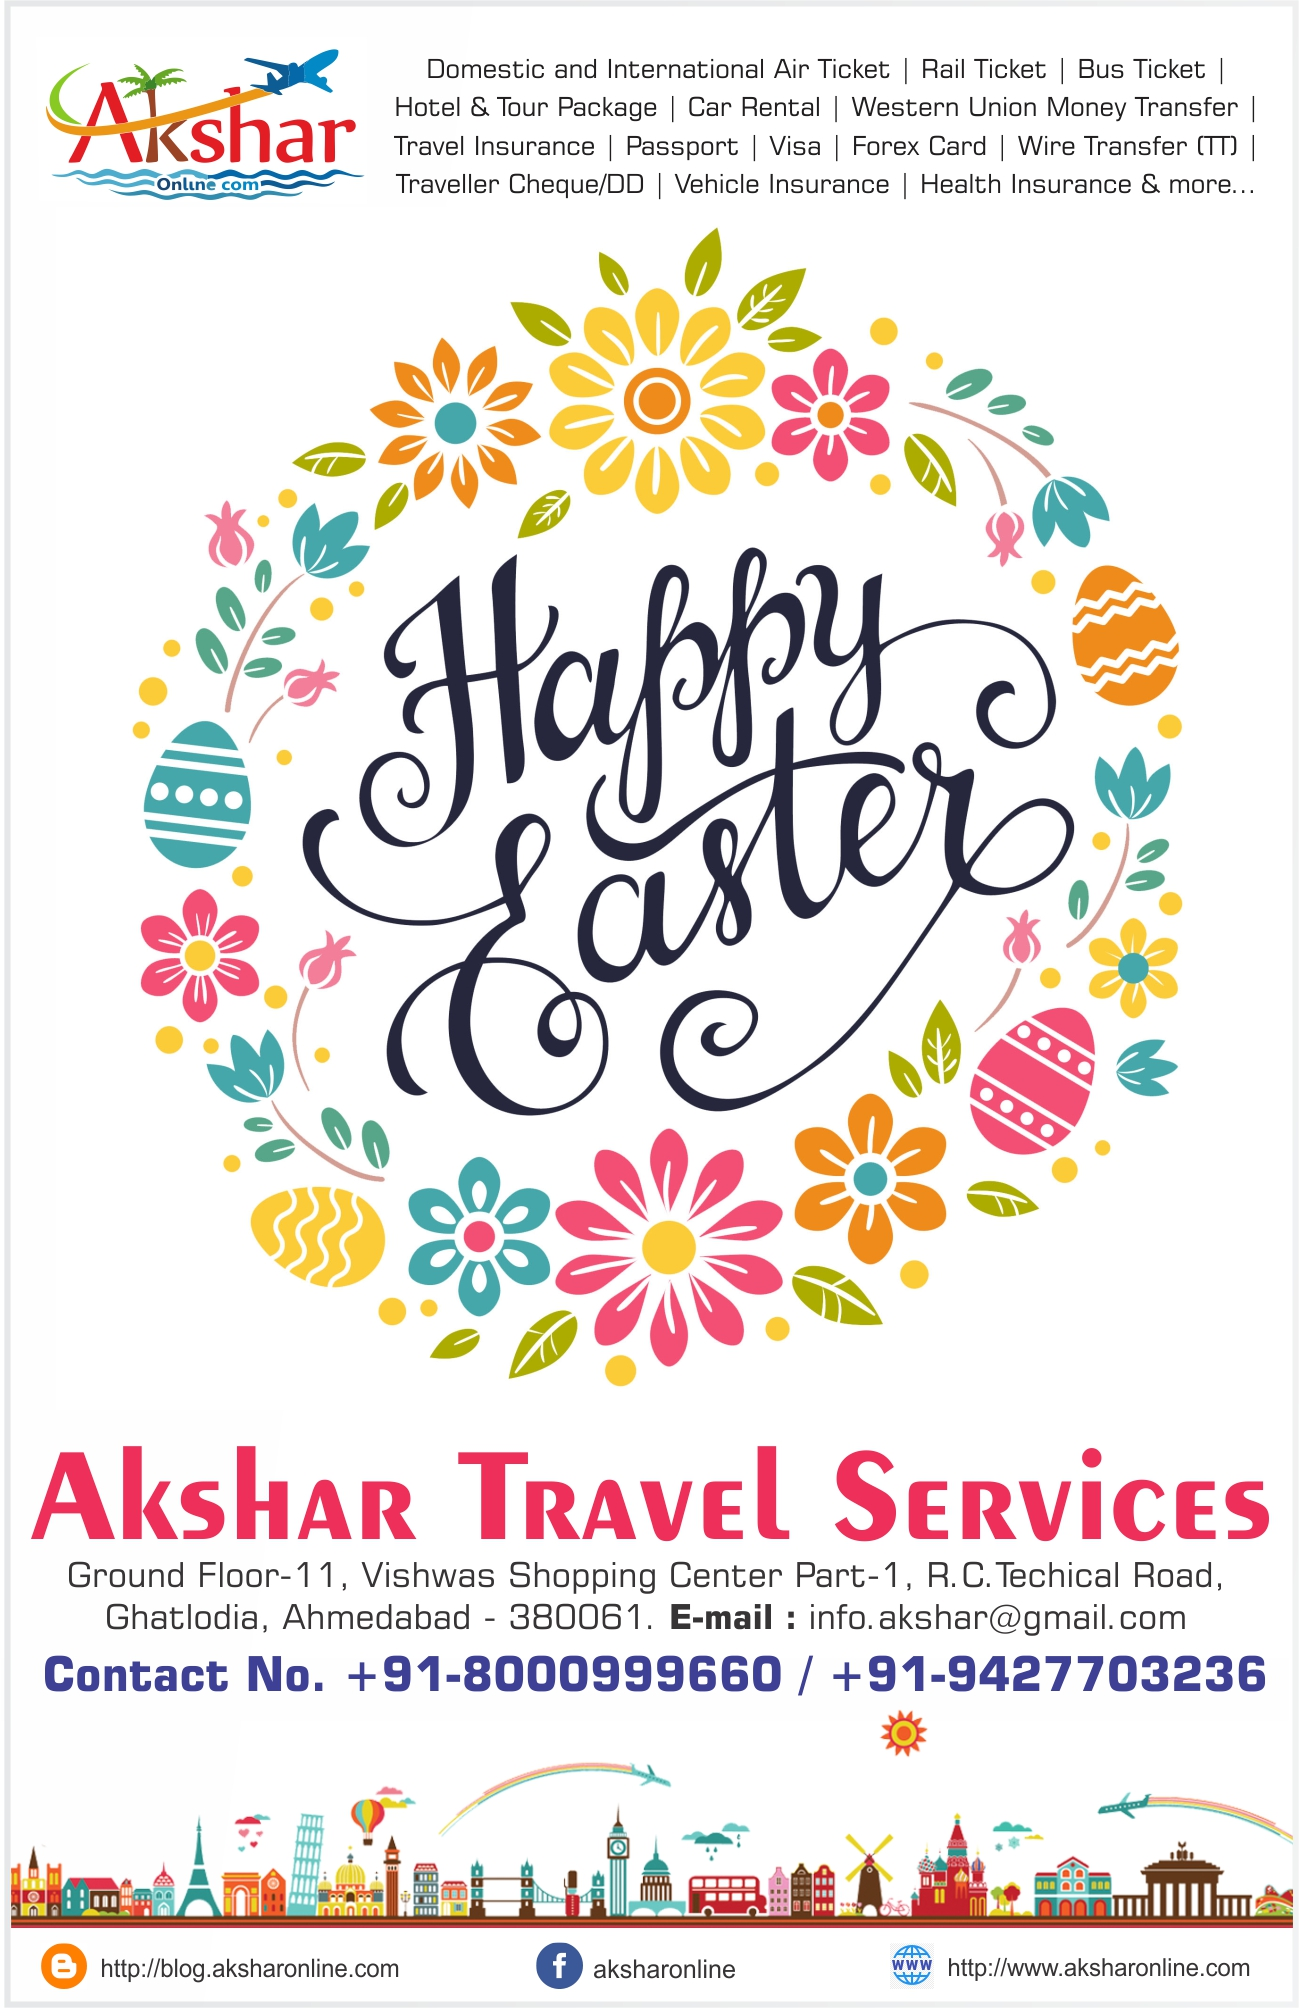 Happy Easter Sunday - India travel, travel in India, cheap air tickets, cheap flights, flight, hotels, hotel, holidays, bus tickets, air travel, air tickets, holiday packages, travel packages, railways, trains, rail, aksharonline India, Travel Agent in India, Travel Agent in Gujarat, Travel Agent in Ahmedbad, Cheap Domestic and International Air Ticket Booking, Hotel Booking, Tour Packages, Western Union Money Transfer, Foreign Exchange, Travel Insurance, Car Rental, Utility Bill Payment, Bus Ticketing and More, Cheap Flight Ticket, Cheap Air Ticket, Air Ticket Agent in India, Air Ticket Agent in Ahmedabad, Air Ticket Agent in Gujarat, Air Ticket Agent in Ghatlodia, Flight Ticket Booking,Cheap Railway Ticket, Cheap Railway Ticket, Railway Ticket Agent in India, Railway Ticket Agent in Ahmedabad, Railway Ticket Agent in Gujarat, Railway Ticket Agent in Ghatlodia, Railway Ticket Booking,,Cheap Rail Ticket, Cheap Rail Ticket, Rail Ticket Agent in India, Rail Ticket Agent in Ahmedabad, Rail Ticket Agent in Gujarat, Rail Ticket Agent in Ghatlodia, Rail Ticket Booking,Cheap Bus Ticket, Cheap Bus Ticket, Bus Ticket Agent in India, Bus Ticket Agent in Ahmedabad, Bus Ticket Agent in Gujarat, Bus Ticket Agent in Ghatlodia, Bus Ticket Booking,Cheap Hotel Ticket, Cheap Hotel Ticket, Hotel Ticket Agent in India, Hotel Ticket Agent in Ahmedabad, Hotel Ticket Agent in Gujarat, Hotel Ticket Agent in Ghatlodia, Hotel Ticket Booking,Cheap Travel Insurance Ticket, Cheap Travel Insurance Ticket, Travel Insurance Ticket Agent in India, Travel Insurance Ticket Agent in Ahmedabad, Travel Insurance Ticket Agent in Gujarat, Travel Insurance Ticket Agent in Ghatlodia, Travel Insurance Ticket Booking,Cheap Car Rental Ticket, Cheap Car Rental Ticket, Car Rental Ticket Agent in India, Car Rental Ticket Agent in Ahmedabad, Car Rental Ticket Agent in Gujarat, Car Rental Ticket Agent in Ghatlodia, Car Rental Ticket Booking,Daily Service bus ticket booking, volvo bus ticket agent, volvo ticket agent in ahmedabad, volvo ticket, air ticket international, international air ticket agent, international flight ticket agent in ahmedabad, domestic air ticket booking, domestic and international air ticket booking agency, air ticket booking center, airline ticket booking center, 24hrs ticketing, air ticket india, air ticket international, sola ticket booking, ghatlodia ticket booking, ahmedabad ticket booking agent, railway ticket agent in ahmedabad, hotel booking in ahmedabad, flight ticket agent in ahmedabad, Flight booking, domestic flights, international flights,cheap air tickets, flight booking, air ticket booking, hotel booking, packages, buses, 5 star hotels, discount on hotels, Tour agent in ghatlodia, travel agent in ghatlodia, ghatlodia air travel agency, airline travel booking, flight booking, flight reservation, tour operator in ghatlodia, travel agent in ghatlodia, cheap flights, cheap tickets, expedia flights, seats availability, reservation, enquiry, pnr enquiry, cheap air tickets, flight booking, air ticket booking, hotel booking, indianrail, irctc, reservation irctc, luxury train in india, asia travel and hotels, indian travel agency, resorts, hotelairline tickets, holiday, travel ,hotels, hotel, flight booking, cheap flight tickets, package tours, discount air ticket, air ticket offers, air ticket offer, airticket, china airlines,air ticket,travel agency,cheap airline tickets,,cheap air tickets,cheap air,cheap airfare,cheap o air,cheap plane tickets,airplane ticket,travel sites,airline flights, travel websites,travel deals,places to visit,beach holidays,travel packages,best flight deals,travel agencies,best at travel,places to go,disney vacation planner,tour agency,travel consultant,local travel agents,rail europe travel agents,rail travel agent,international travel agency,corporate travel agent,honeymoon travel agent, become airline ticket agent, airline ticket agent calgary, airline ticket agent in ahmedabad, airline ticket agent in ghatlodia, travel agency near me, travel agency in ahmedabad, travel agency in bapunagar, travel agency in dariyapur, travel agency in shahpur, travel agency in khanpur, travel agency in mirzapur, travel agency in shahibaug, travel agency in kali, travel agency in chandola lake, travel agency in bodakdev, travel agency in maninagar, travel agency in vastrapur, travel agency in nava vadaj, travel agency in Ambawadi, travel agency in Ellis Bridge, travel agency in navrangpura, travel agency in ghatlodiya, travel agency in naroda, travel agency in jodhpur, travel agency in paldi, travel agency in bopal, travel agency in ranip, travel agency in gota, travel agency in sarkhej, travel agency in vasana, travel agency in vejalpur, travel agency in gomtipur, travel agency in C G Road, travel agency in lawgarden, travel agency in laldarwaja, travel agency in prahladnagar, travel agency in satellite, travel agency in jivrajpark, travel agency in narol, travel agency in vatwa, travel agency in  ghodasar, travel agency in gurukul, travel agency in  isanpur, travel agency in chandkheda, travel agency in vastral, travel agency in juhapura, travel agency in thaltej, travel agency in chandlodiya, travel agency in krishnanagar, travel agency in shilaj, travel agency in vastral, travel agency in meghani nagar, travel agency in ashtodia, travel agency in gandhinagar, travel agency in kalol, travel agency in bhavnagar, travel agency in mehsana, travel agency in palanpur, travel agency in banaskantha, Rail Ticket Booking Agent near me, Rail Ticket Booking Agent in ahmedabad, Rail Ticket Booking Agent in bapunagar, Rail Ticket Booking Agent in dariyapur, Rail Ticket Booking Agent in shahpur, Rail Ticket Booking Agent in khanpur, Rail Ticket Booking Agent in mirzapur, Rail Ticket Booking Agent in shahibaug, Rail Ticket Booking Agent in kali, Rail Ticket Booking Agent in chandola lake, Rail Ticket Booking Agent in bodakdev, Rail Ticket Booking Agent in maninagar, Rail Ticket Booking Agent in vastrapur, Rail Ticket Booking Agent in nava vadaj, Rail Ticket Booking Agent in Ambawadi, Rail Ticket Booking Agent in Ellis Bridge, Rail Ticket Booking Agent in navrangpura, Rail Ticket Booking Agent in ghatlodiya, Rail Ticket Booking Agent in naroda, Rail Ticket Booking Agent in jodhpur, Rail Ticket Booking Agent in paldi, Rail Ticket Booking Agent in bopal, Rail Ticket Booking Agent in ranip, Rail Ticket Booking Agent in gota, Rail Ticket Booking Agent in sarkhej, Rail Ticket Booking Agent in vasana, Rail Ticket Booking Agent in vejalpur, Rail Ticket Booking Agent in gomtipur, Rail Ticket Booking Agent in C G Road, Rail Ticket Booking Agent in lawgarden, Rail Ticket Booking Agent in laldarwaja, Rail Ticket Booking Agent in prahladnagar, Rail Ticket Booking Agent in satellite, Rail Ticket Booking Agent in jivrajpark, Rail Ticket Booking Agent in narol, Rail Ticket Booking Agent in vatwa, Rail Ticket Booking Agent in  ghodasar, Rail Ticket Booking Agent in gurukul, Rail Ticket Booking Agent in  isanpur, Rail Ticket Booking Agent in chandkheda, Rail Ticket Booking Agent in vastral, Rail Ticket Booking Agent in juhapura, Rail Ticket Booking Agent in thaltej, Rail Ticket Booking Agent in chandlodiya, Rail Ticket Booking Agent in krishnanagar, Rail Ticket Booking Agent in shilaj, Rail Ticket Booking Agent in vastral, Rail Ticket Booking Agent in meghani nagar, Rail Ticket Booking Agent in ashtodia, Rail Ticket Booking Agent in gandhinagar, Rail Ticket Booking Agent in kalol, Rail Ticket Booking Agent in bhavnagar, Rail Ticket Booking Agent in mehsana, Rail Ticket Booking Agent in palanpur, Rail Ticket Booking Agent in banaskantha, Air Ticket Booking Agent near me, Air Ticket Booking Agent in ahmedabad, Air Ticket Booking Agent in bapunagar, Air Ticket Booking Agent in dariyapur, Air Ticket Booking Agent in shahpur, Air Ticket Booking Agent in khanpur, Air Ticket Booking Agent in mirzapur, Air Ticket Booking Agent in shahibaug, Air Ticket Booking Agent in kali, Air Ticket Booking Agent in chandola lake, Air Ticket Booking Agent in bodakdev, Air Ticket Booking Agent in maninagar, Air Ticket Booking Agent in vastrapur, Air Ticket Booking Agent in nava vadaj, Air Ticket Booking Agent in Ambawadi, Air Ticket Booking Agent in Ellis Bridge, Air Ticket Booking Agent in navrangpura, Air Ticket Booking Agent in ghatlodiya, Air Ticket Booking Agent in naroda, Air Ticket Booking Agent in jodhpur, Air Ticket Booking Agent in paldi, Air Ticket Booking Agent in bopal, Air Ticket Booking Agent in ranip, Air Ticket Booking Agent in gota, Air Ticket Booking Agent in sarkhej, Air Ticket Booking Agent in vasana, Air Ticket Booking Agent in vejalpur, Air Ticket Booking Agent in gomtipur, Air Ticket Booking Agent in C G Road, Air Ticket Booking Agent in lawgarden, Air Ticket Booking Agent in laldarwaja, Air Ticket Booking Agent in prahladnagar, Air Ticket Booking Agent in satellite, Air Ticket Booking Agent in jivrajpark, Air Ticket Booking Agent in narol, Air Ticket Booking Agent in vatwa, Air Ticket Booking Agent in  ghodasar, Air Ticket Booking Agent in gurukul, Air Ticket Booking Agent in  isanpur, Air Ticket Booking Agent in chandkheda, Air Ticket Booking Agent in vastral, Air Ticket Booking Agent in juhapura, Air Ticket Booking Agent in thaltej, Air Ticket Booking Agent in chandlodiya, Air Ticket Booking Agent in krishnanagar, Air Ticket Booking Agent in shilaj, Air Ticket Booking Agent in vastral, Air Ticket Booking Agent in meghani nagar, Air Ticket Booking Agent in ashtodia, Air Ticket Booking Agent in gandhinagar, Air Ticket Booking Agent in kalol, Air Ticket Booking Agent in bhavnagar, Air Ticket Booking Agent in mehsana, Air Ticket Booking Agent in palanpur, Air Ticket Booking Agent in banaskantha, Bus Ticket Booking near me, Bus Ticket Booking in ahmedabad, Bus Ticket Booking in bapunagar, Bus Ticket Booking in dariyapur, Bus Ticket Booking in shahpur, Bus Ticket Booking in khanpur, Bus Ticket Booking in mirzapur, Bus Ticket Booking in shahibaug, Bus Ticket Booking in kali, Bus Ticket Booking in chandola lake, Bus Ticket Booking in bodakdev, Bus Ticket Booking in maninagar, Bus Ticket Booking in vastrapur, Bus Ticket Booking in nava vadaj, Bus Ticket Booking in Ambawadi, Bus Ticket Booking in Ellis Bridge, Bus Ticket Booking in navrangpura, Bus Ticket Booking in ghatlodiya, Bus Ticket Booking in naroda, Bus Ticket Booking in jodhpur, Bus Ticket Booking in paldi, Bus Ticket Booking in bopal, Bus Ticket Booking in ranip, Bus Ticket Booking in gota, Bus Ticket Booking in sarkhej, Bus Ticket Booking in vasana, Bus Ticket Booking in vejalpur, Bus Ticket Booking in gomtipur, Bus Ticket Booking in C G Road, Bus Ticket Booking in lawgarden, Bus Ticket Booking in laldarwaja, Bus Ticket Booking in prahladnagar, Bus Ticket Booking in satellite, Bus Ticket Booking in jivrajpark, Bus Ticket Booking in narol, Bus Ticket Booking in vatwa, Bus Ticket Booking in  ghodasar, Bus Ticket Booking in gurukul, Bus Ticket Booking in  isanpur, Bus Ticket Booking in chandkheda, Bus Ticket Booking in vastral, Bus Ticket Booking in juhapura, Bus Ticket Booking in thaltej, Bus Ticket Booking in chandlodiya, Bus Ticket Booking in krishnanagar, Bus Ticket Booking in shilaj, Bus Ticket Booking in vastral, Bus Ticket Booking in meghani nagar, Bus Ticket Booking in ashtodia, Bus Ticket Booking in gandhinagar, Bus Ticket Booking in kalol, Bus Ticket Booking in bhavnagar, Bus Ticket Booking in mehsana, Bus Ticket Booking in palanpur, Bus Ticket Booking in banaskantha, Hotel Tour Package Booking Agent near me, Hotel Tour Package Booking Agent in ahmedabad, Hotel Tour Package Booking Agent in bapunagar, Hotel Tour Package Booking Agent in dariyapur, Hotel Tour Package Booking Agent in shahpur, Hotel Tour Package Booking Agent in khanpur, Hotel Tour Package Booking Agent in mirzapur, Hotel Tour Package Booking Agent in shahibaug, Hotel Tour Package Booking Agent in kali, Hotel Tour Package Booking Agent in chandola lake, Hotel Tour Package Booking Agent in bodakdev, Hotel Tour Package Booking Agent in maninagar, Hotel Tour Package Booking Agent in vastrapur, Hotel Tour Package Booking Agent in nava vadaj, Hotel Tour Package Booking Agent in Ambawadi, Hotel Tour Package Booking Agent in Ellis Bridge, Hotel Tour Package Booking Agent in navrangpura, Hotel Tour Package Booking Agent in ghatlodiya, Hotel Tour Package Booking Agent in naroda, Hotel Tour Package Booking Agent in jodhpur, Hotel Tour Package Booking Agent in paldi, Hotel Tour Package Booking Agent in bopal, Hotel Tour Package Booking Agent in ranip, Hotel Tour Package Booking Agent in gota, Hotel Tour Package Booking Agent in sarkhej, Hotel Tour Package Booking Agent in vasana, Hotel Tour Package Booking Agent in vejalpur, Hotel Tour Package Booking Agent in gomtipur, Hotel Tour Package Booking Agent in C G Road, Hotel Tour Package Booking Agent in lawgarden, Hotel Tour Package Booking Agent in laldarwaja, Hotel Tour Package Booking Agent in prahladnagar, Hotel Tour Package Booking Agent in satellite, Hotel Tour Package Booking Agent in jivrajpark, Hotel Tour Package Booking Agent in narol, Hotel Tour Package Booking Agent in vatwa, Hotel Tour Package Booking Agent in  ghodasar, Hotel Tour Package Booking Agent in gurukul, Hotel Tour Package Booking Agent in  isanpur, Hotel Tour Package Booking Agent in chandkheda, Hotel Tour Package Booking Agent in vastral, Hotel Tour Package Booking Agent in juhapura, Hotel Tour Package Booking Agent in thaltej, Hotel Tour Package Booking Agent in chandlodiya, Hotel Tour Package Booking Agent in krishnanagar, Hotel Tour Package Booking Agent in shilaj, Hotel Tour Package Booking Agent in vastral, Hotel Tour Package Booking Agent in meghani nagar, Hotel Tour Package Booking Agent in ashtodia, Hotel Tour Package Booking Agent in gandhinagar, Hotel Tour Package Booking Agent in kalol, Hotel Tour Package Booking Agent in bhavnagar, Hotel Tour Package Booking Agent in mehsana, Hotel Tour Package Booking Agent in palanpur, Hotel Tour Package Booking Agent in banaskantha, domestic money transfer services in india domestic money transfer companies in india best domestic money transfer service in india domestic money transfer services domestic money transfer in india domestic money transfer service domestic money transfer india best domestic money transfer companies in india top 10 domestic money transfer companies in india list of domestic money transfer companies in india money transfer services in india domestic money transfer company in india